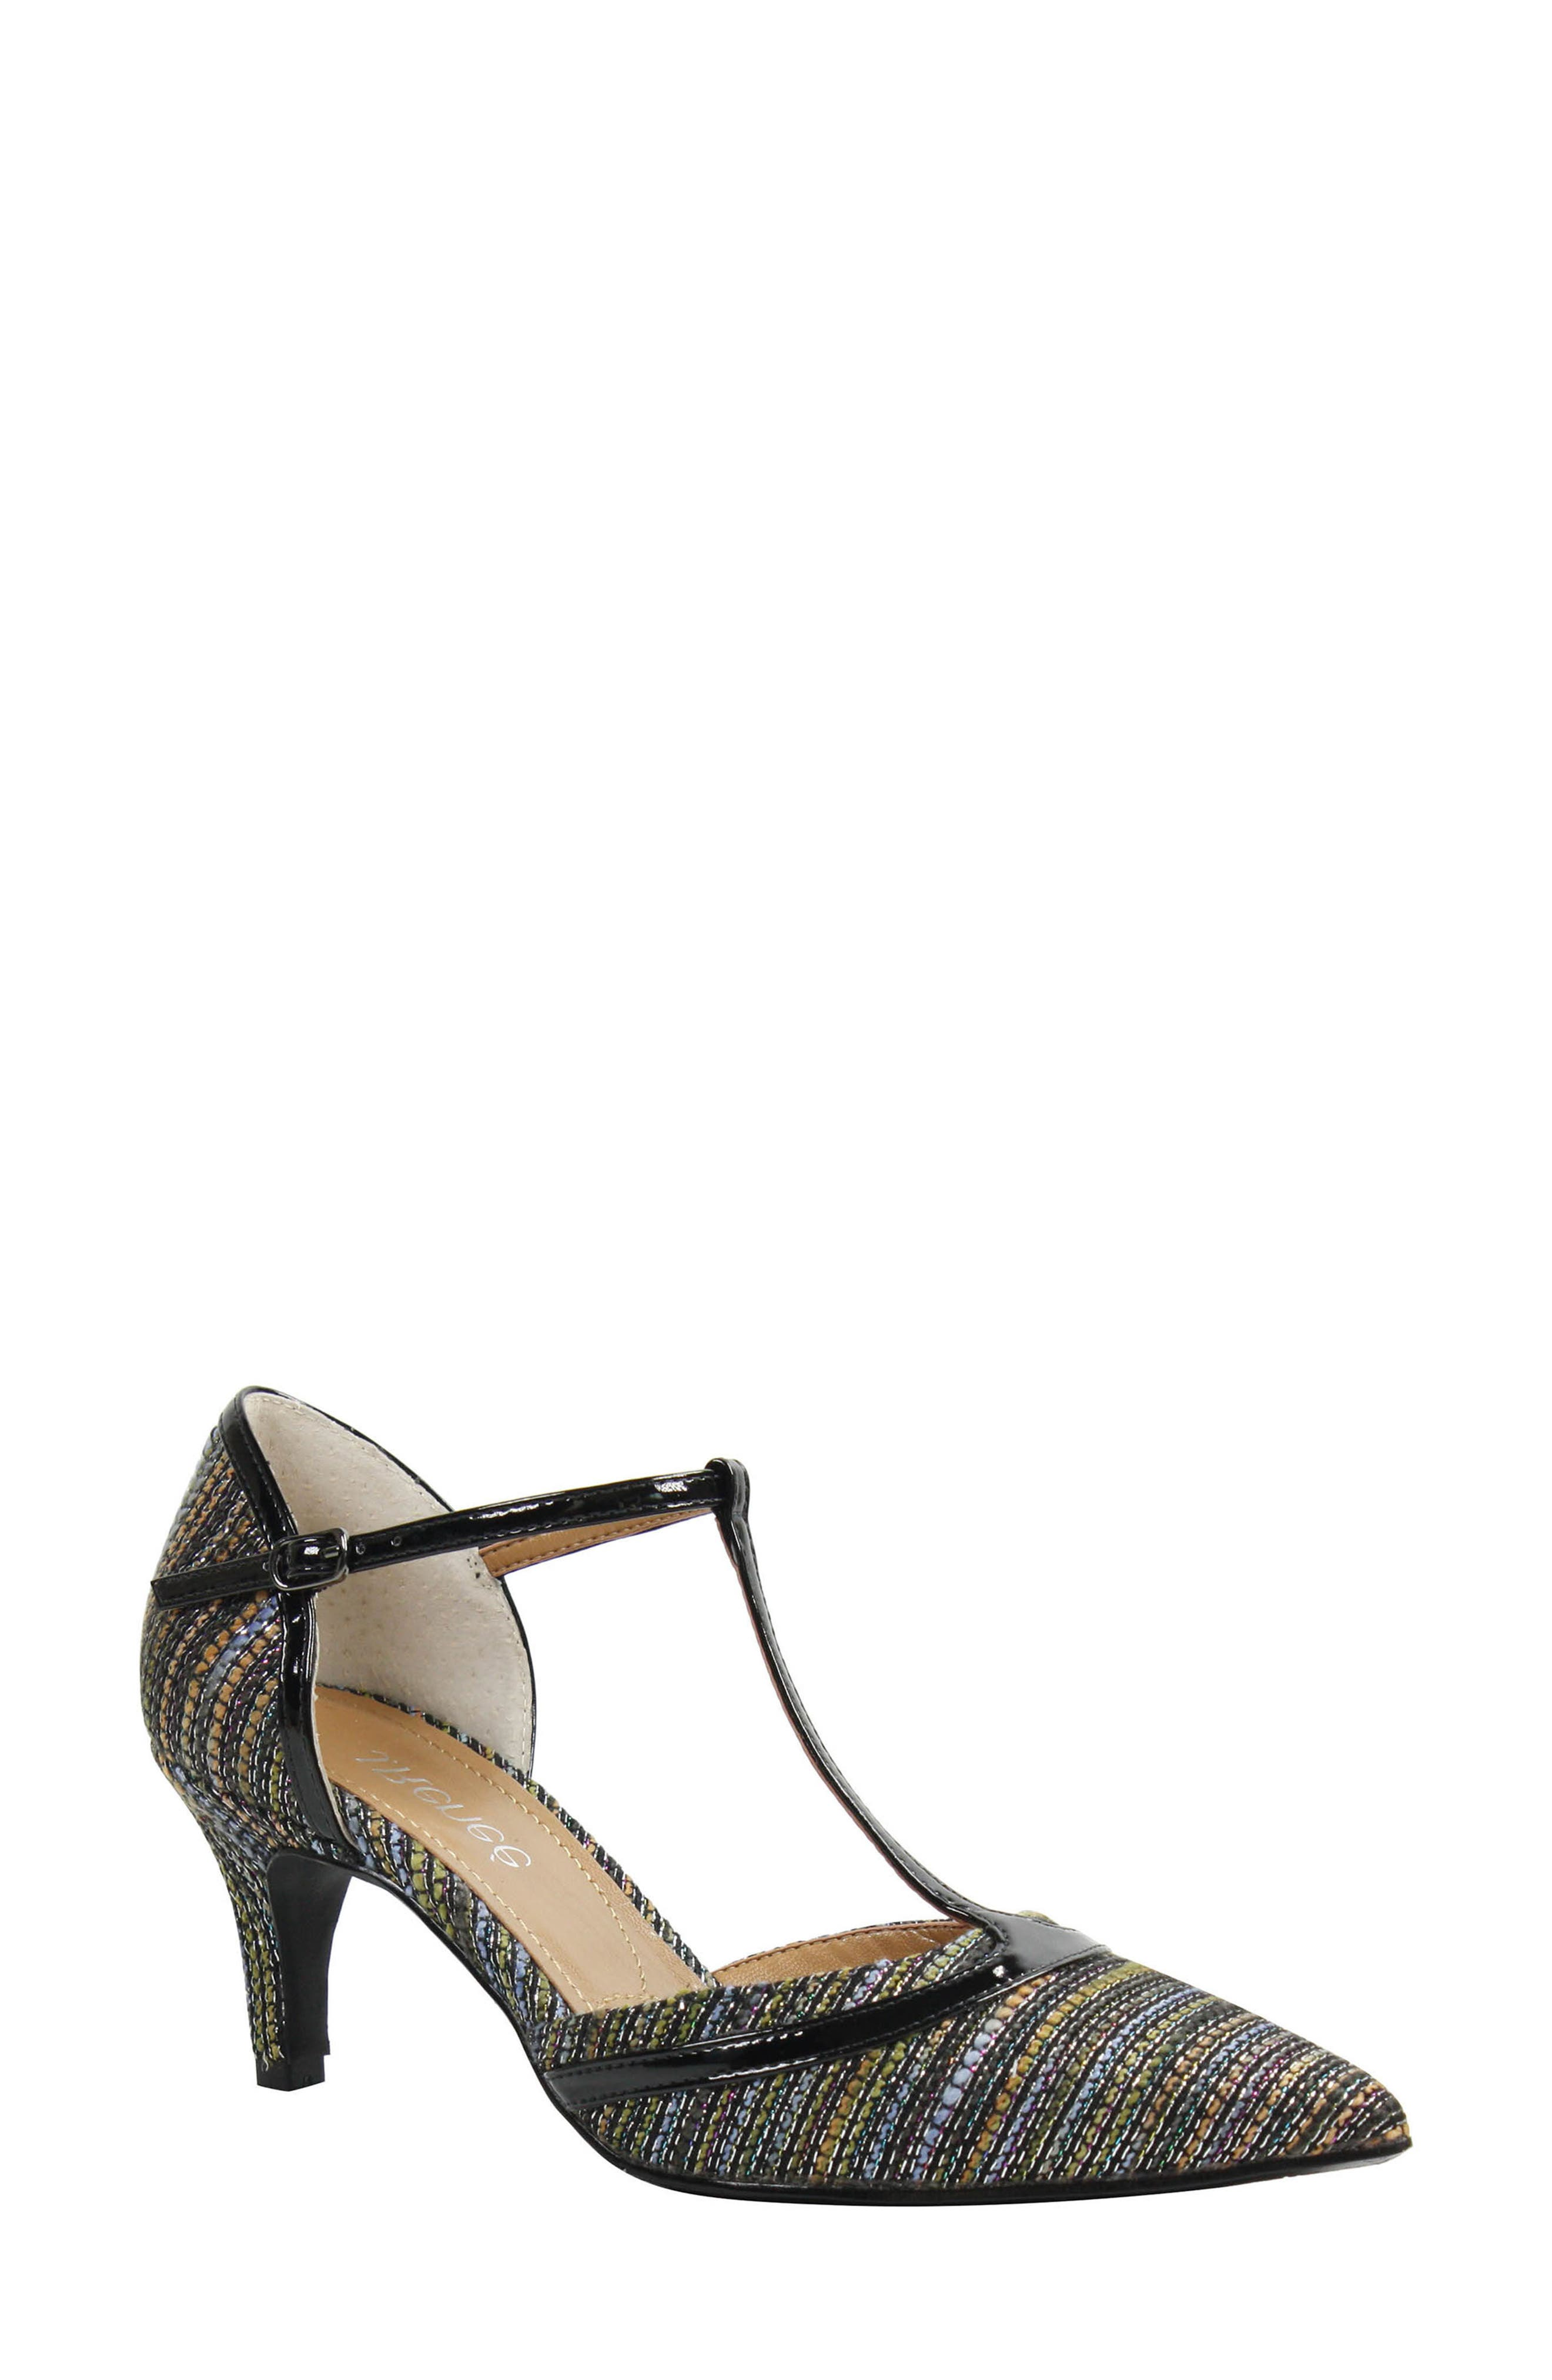 J. Reneé Emiliana T-Strap Pump (Women)